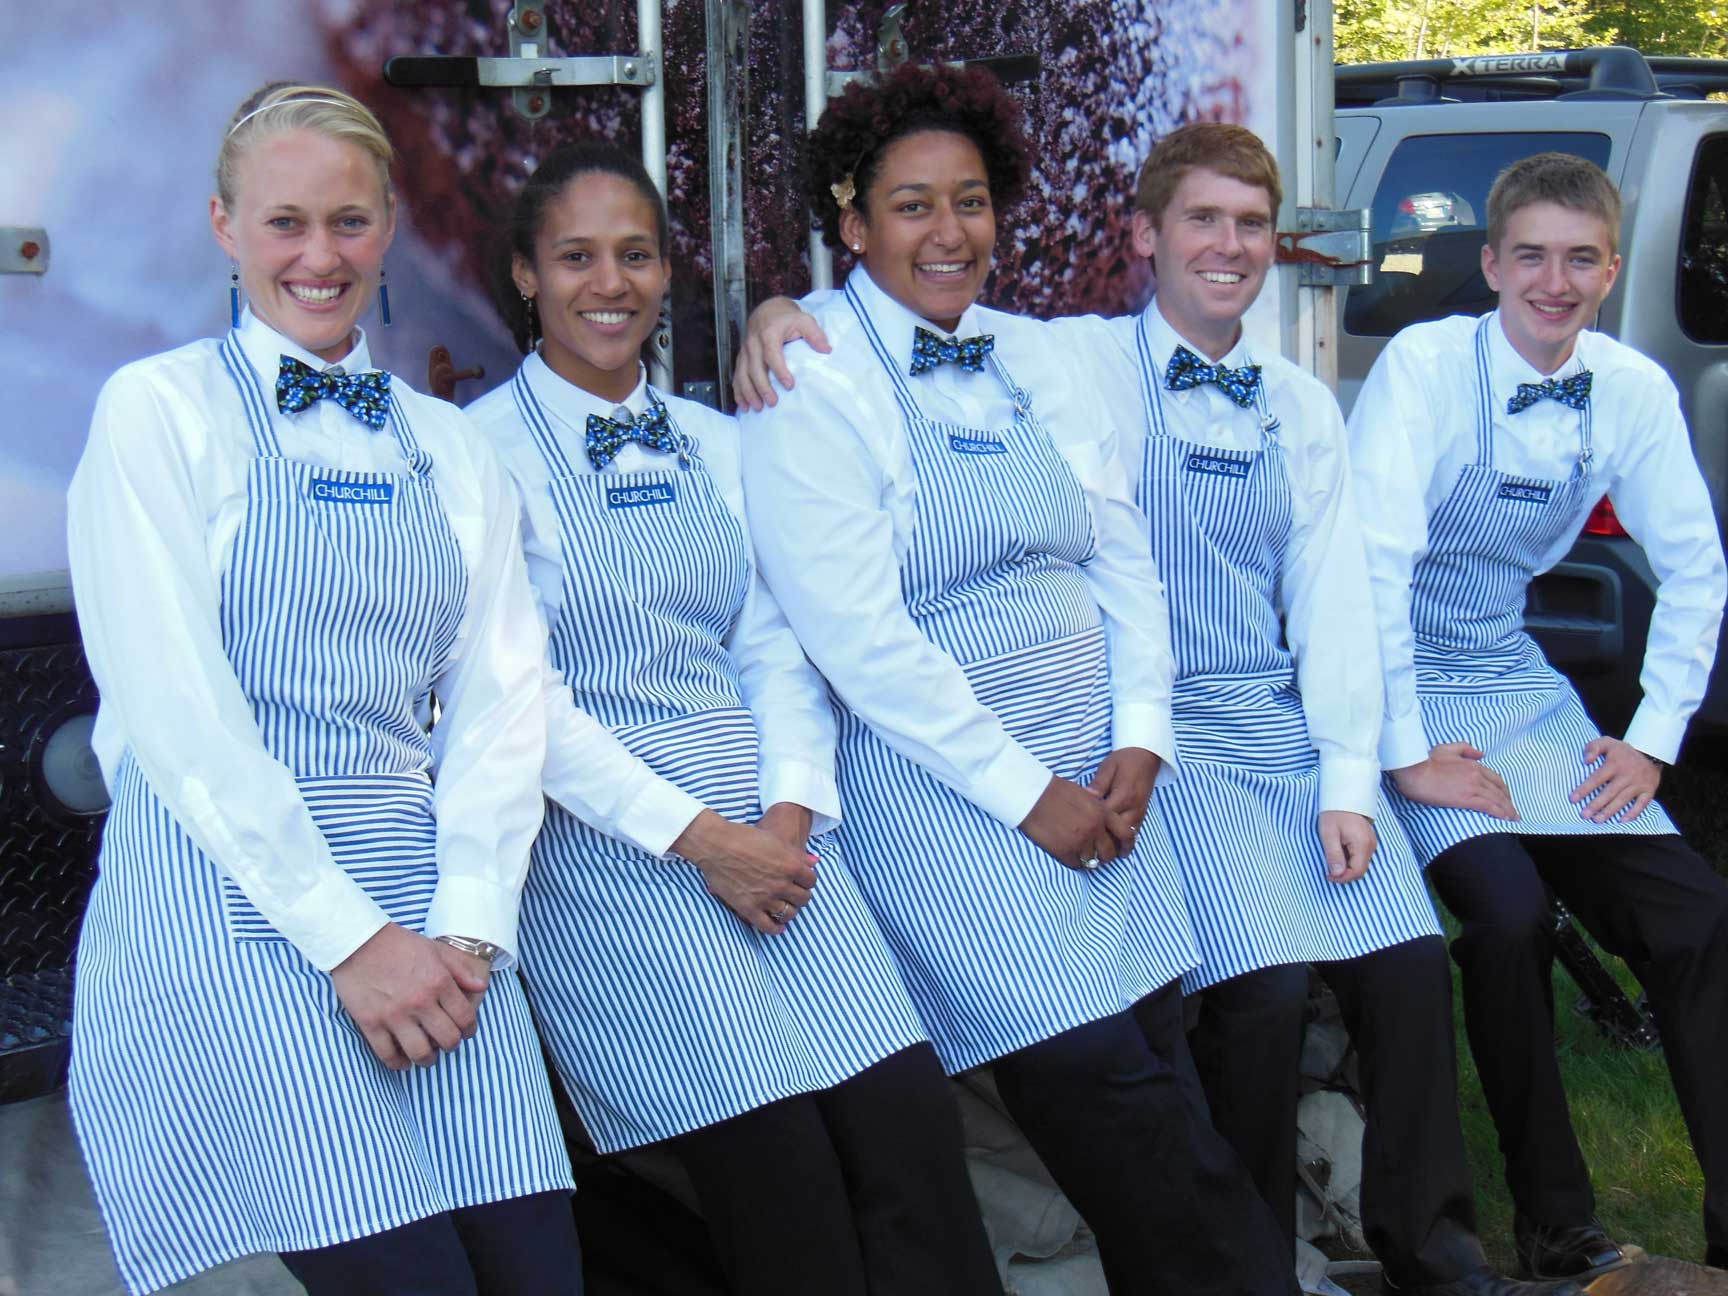 The friendly staff of Churchill Events smiles for the camera.